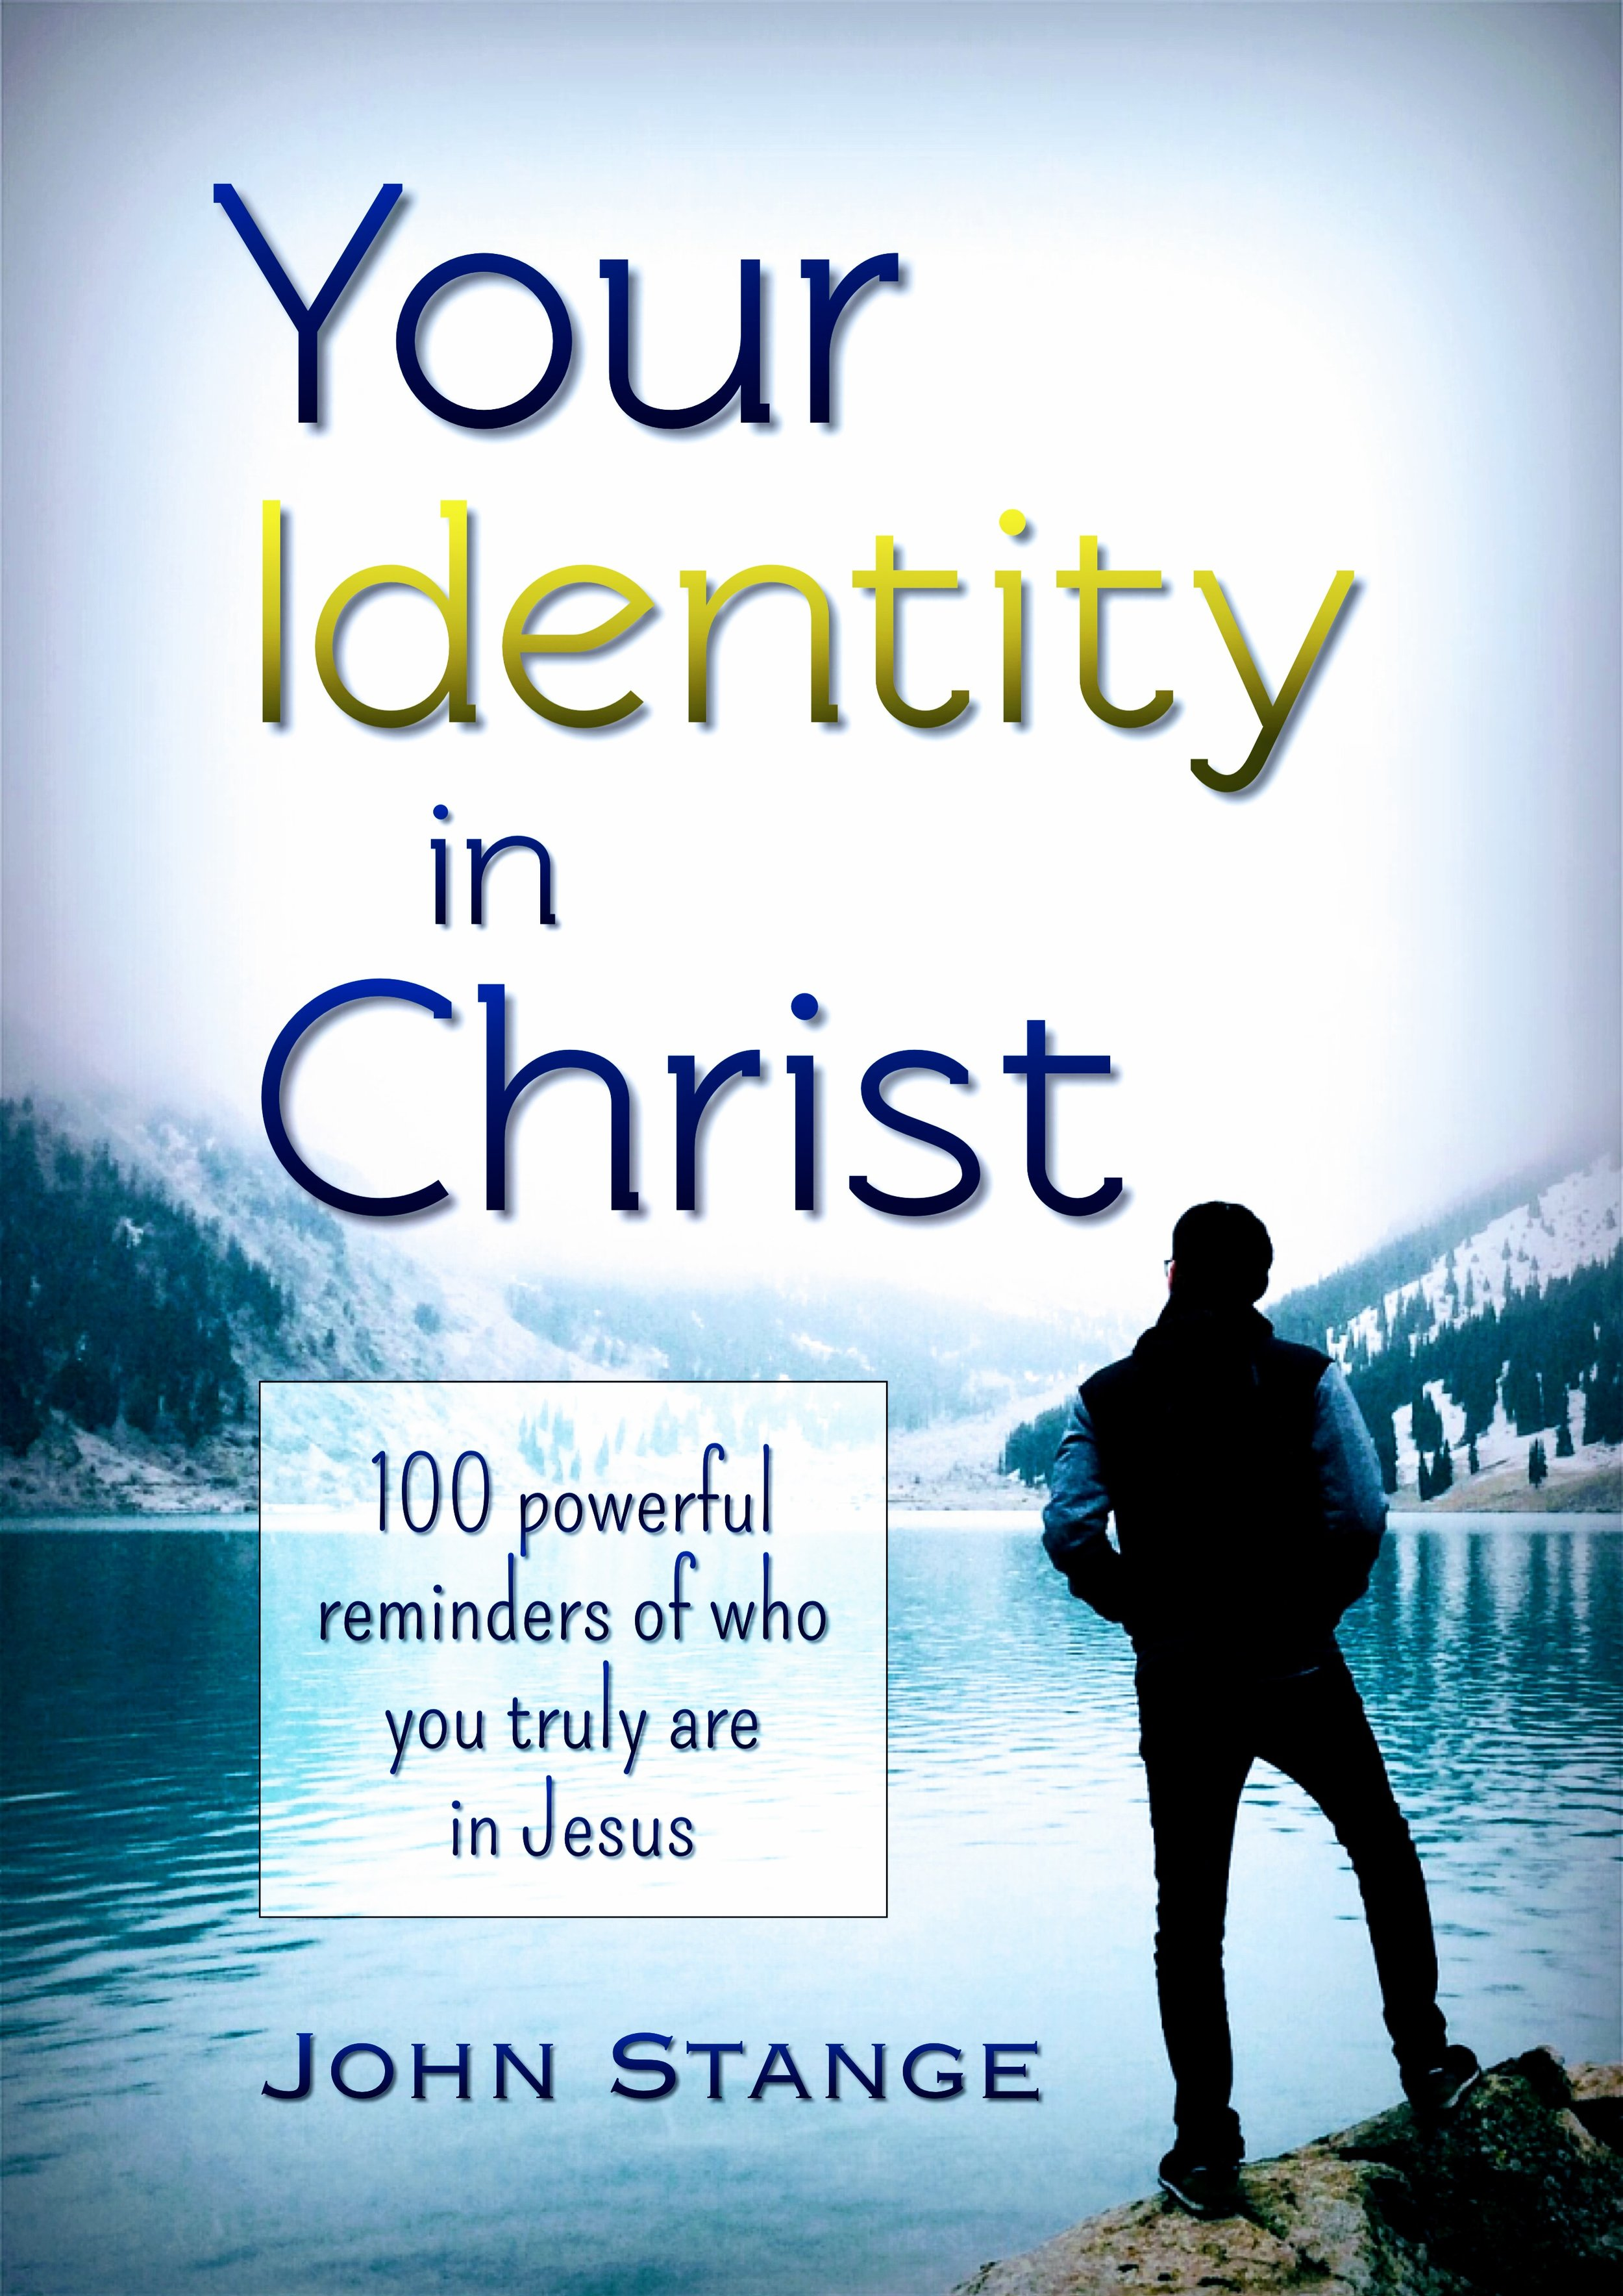 Your Identity in Christ.JPG